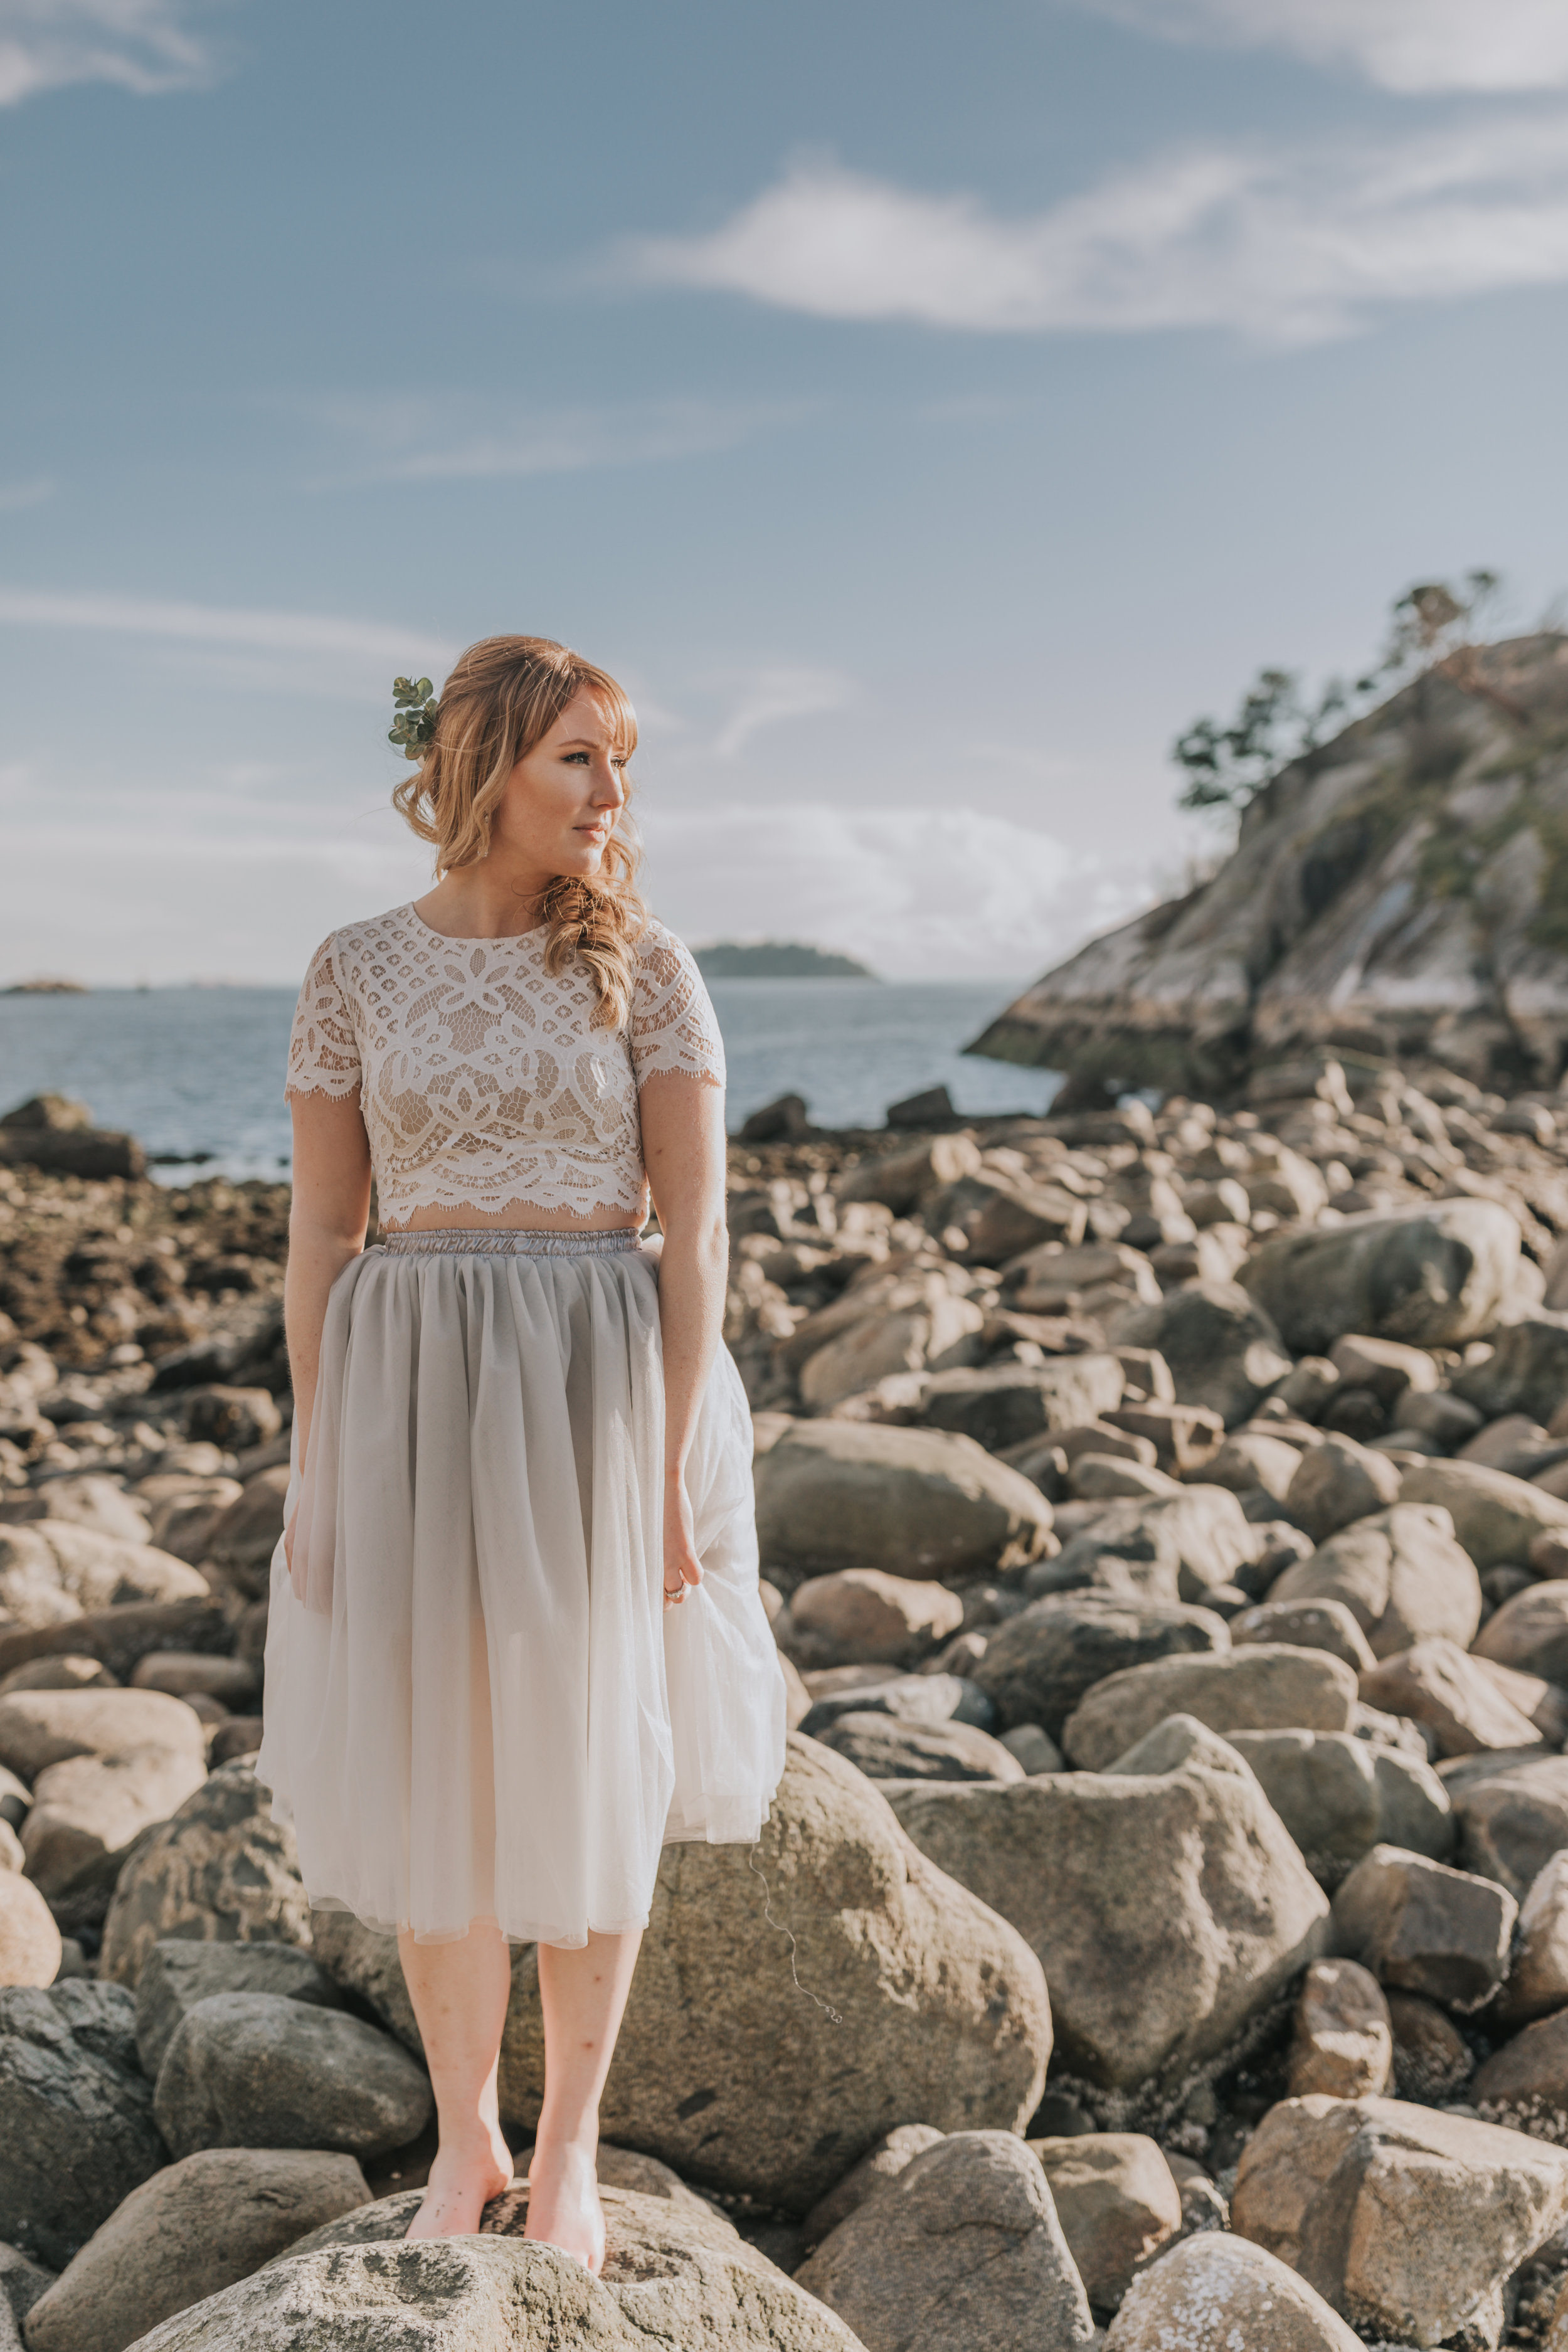 Whytecliff Park Engagement Photos - Vancouver Wedding Photographer - Jennifer Picard Photography056.JPG